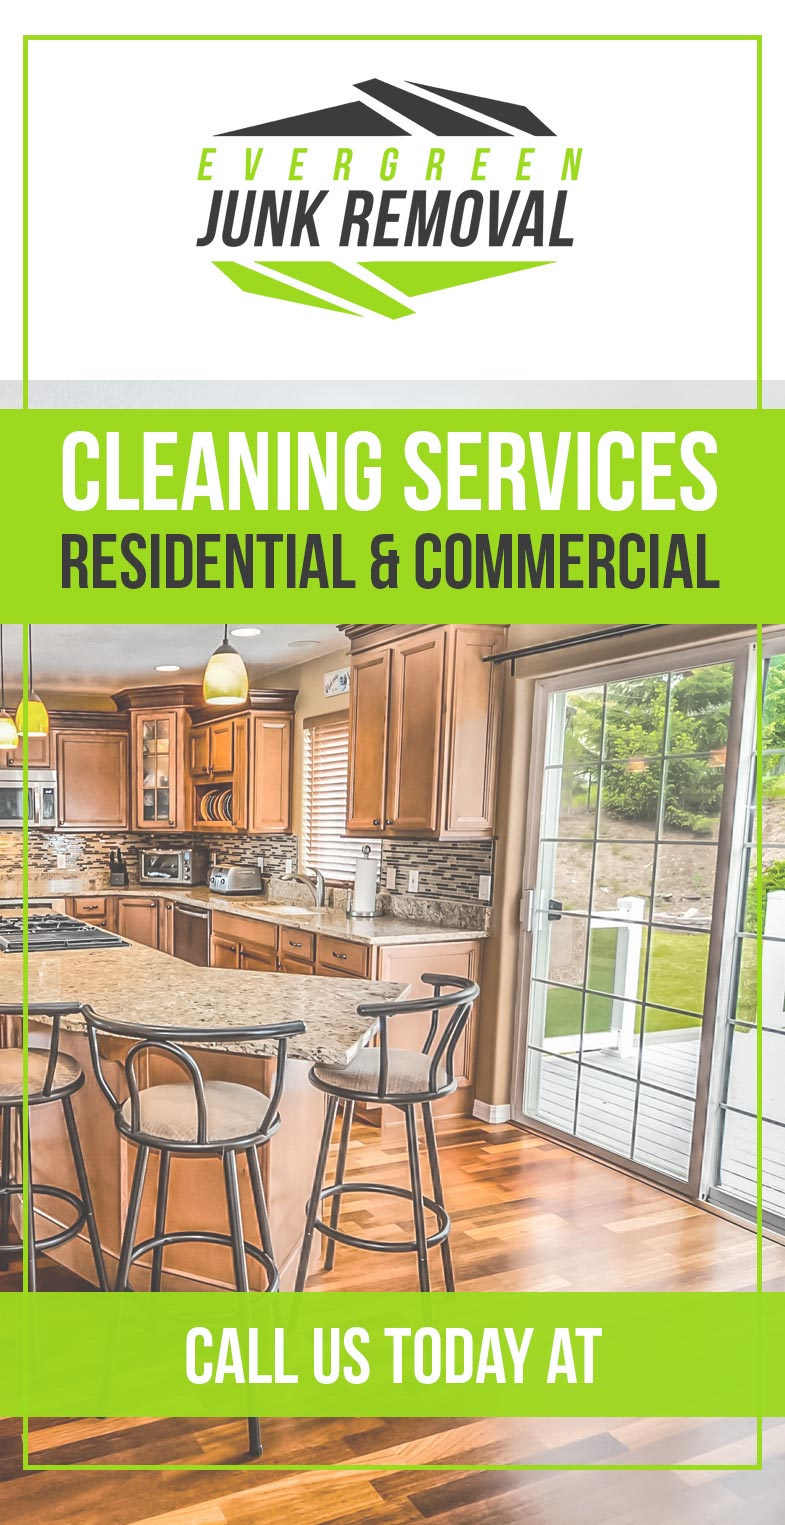 Cooper City Maid Services